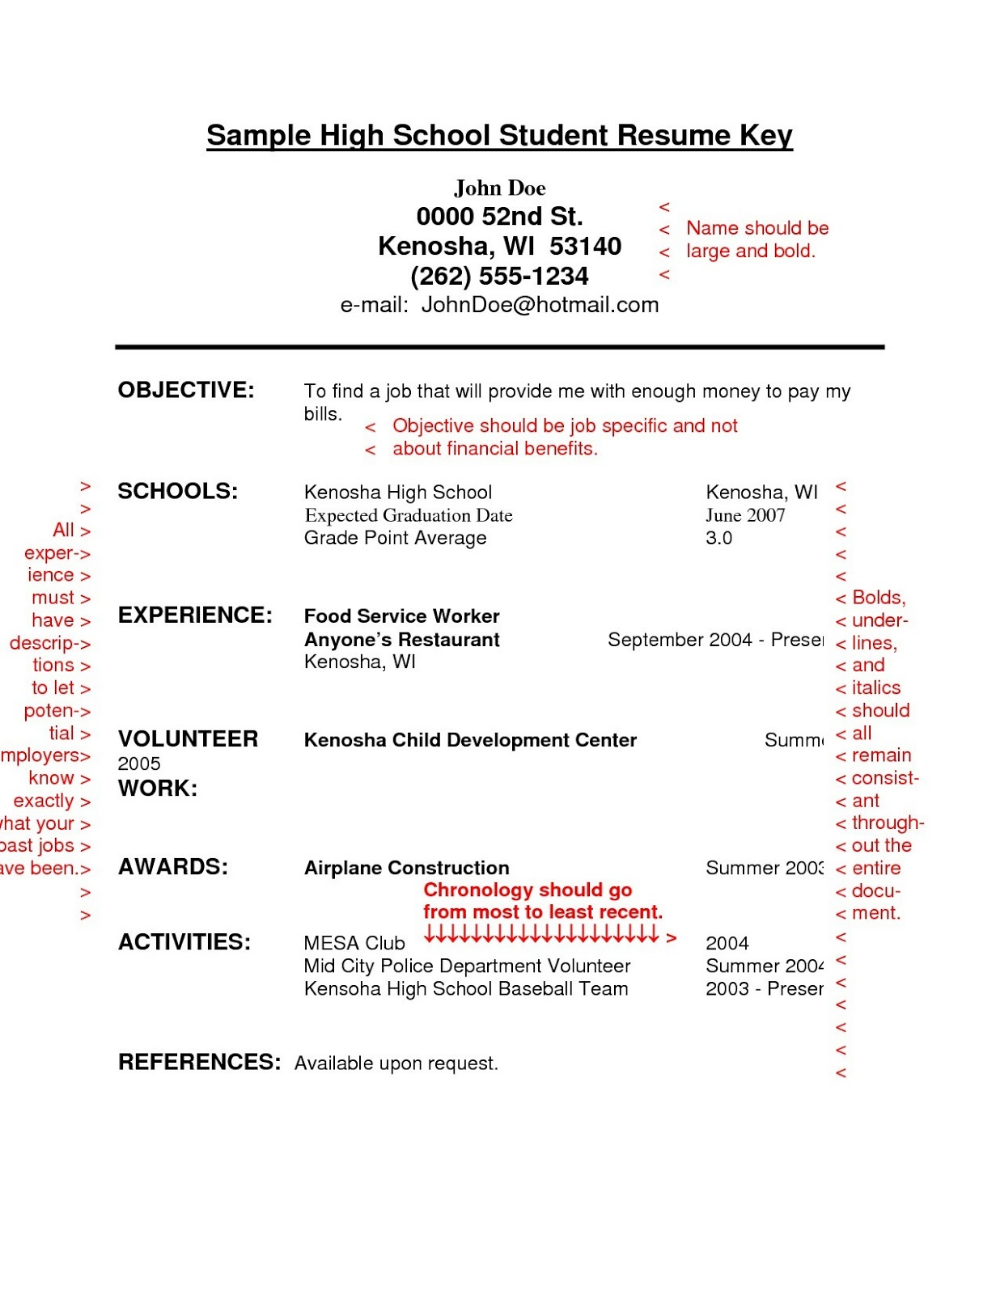 Food Service Resume Objective Examples Food Service Supervisor Resume Objective Example High School Resume Template Student Resume Template High School Resume